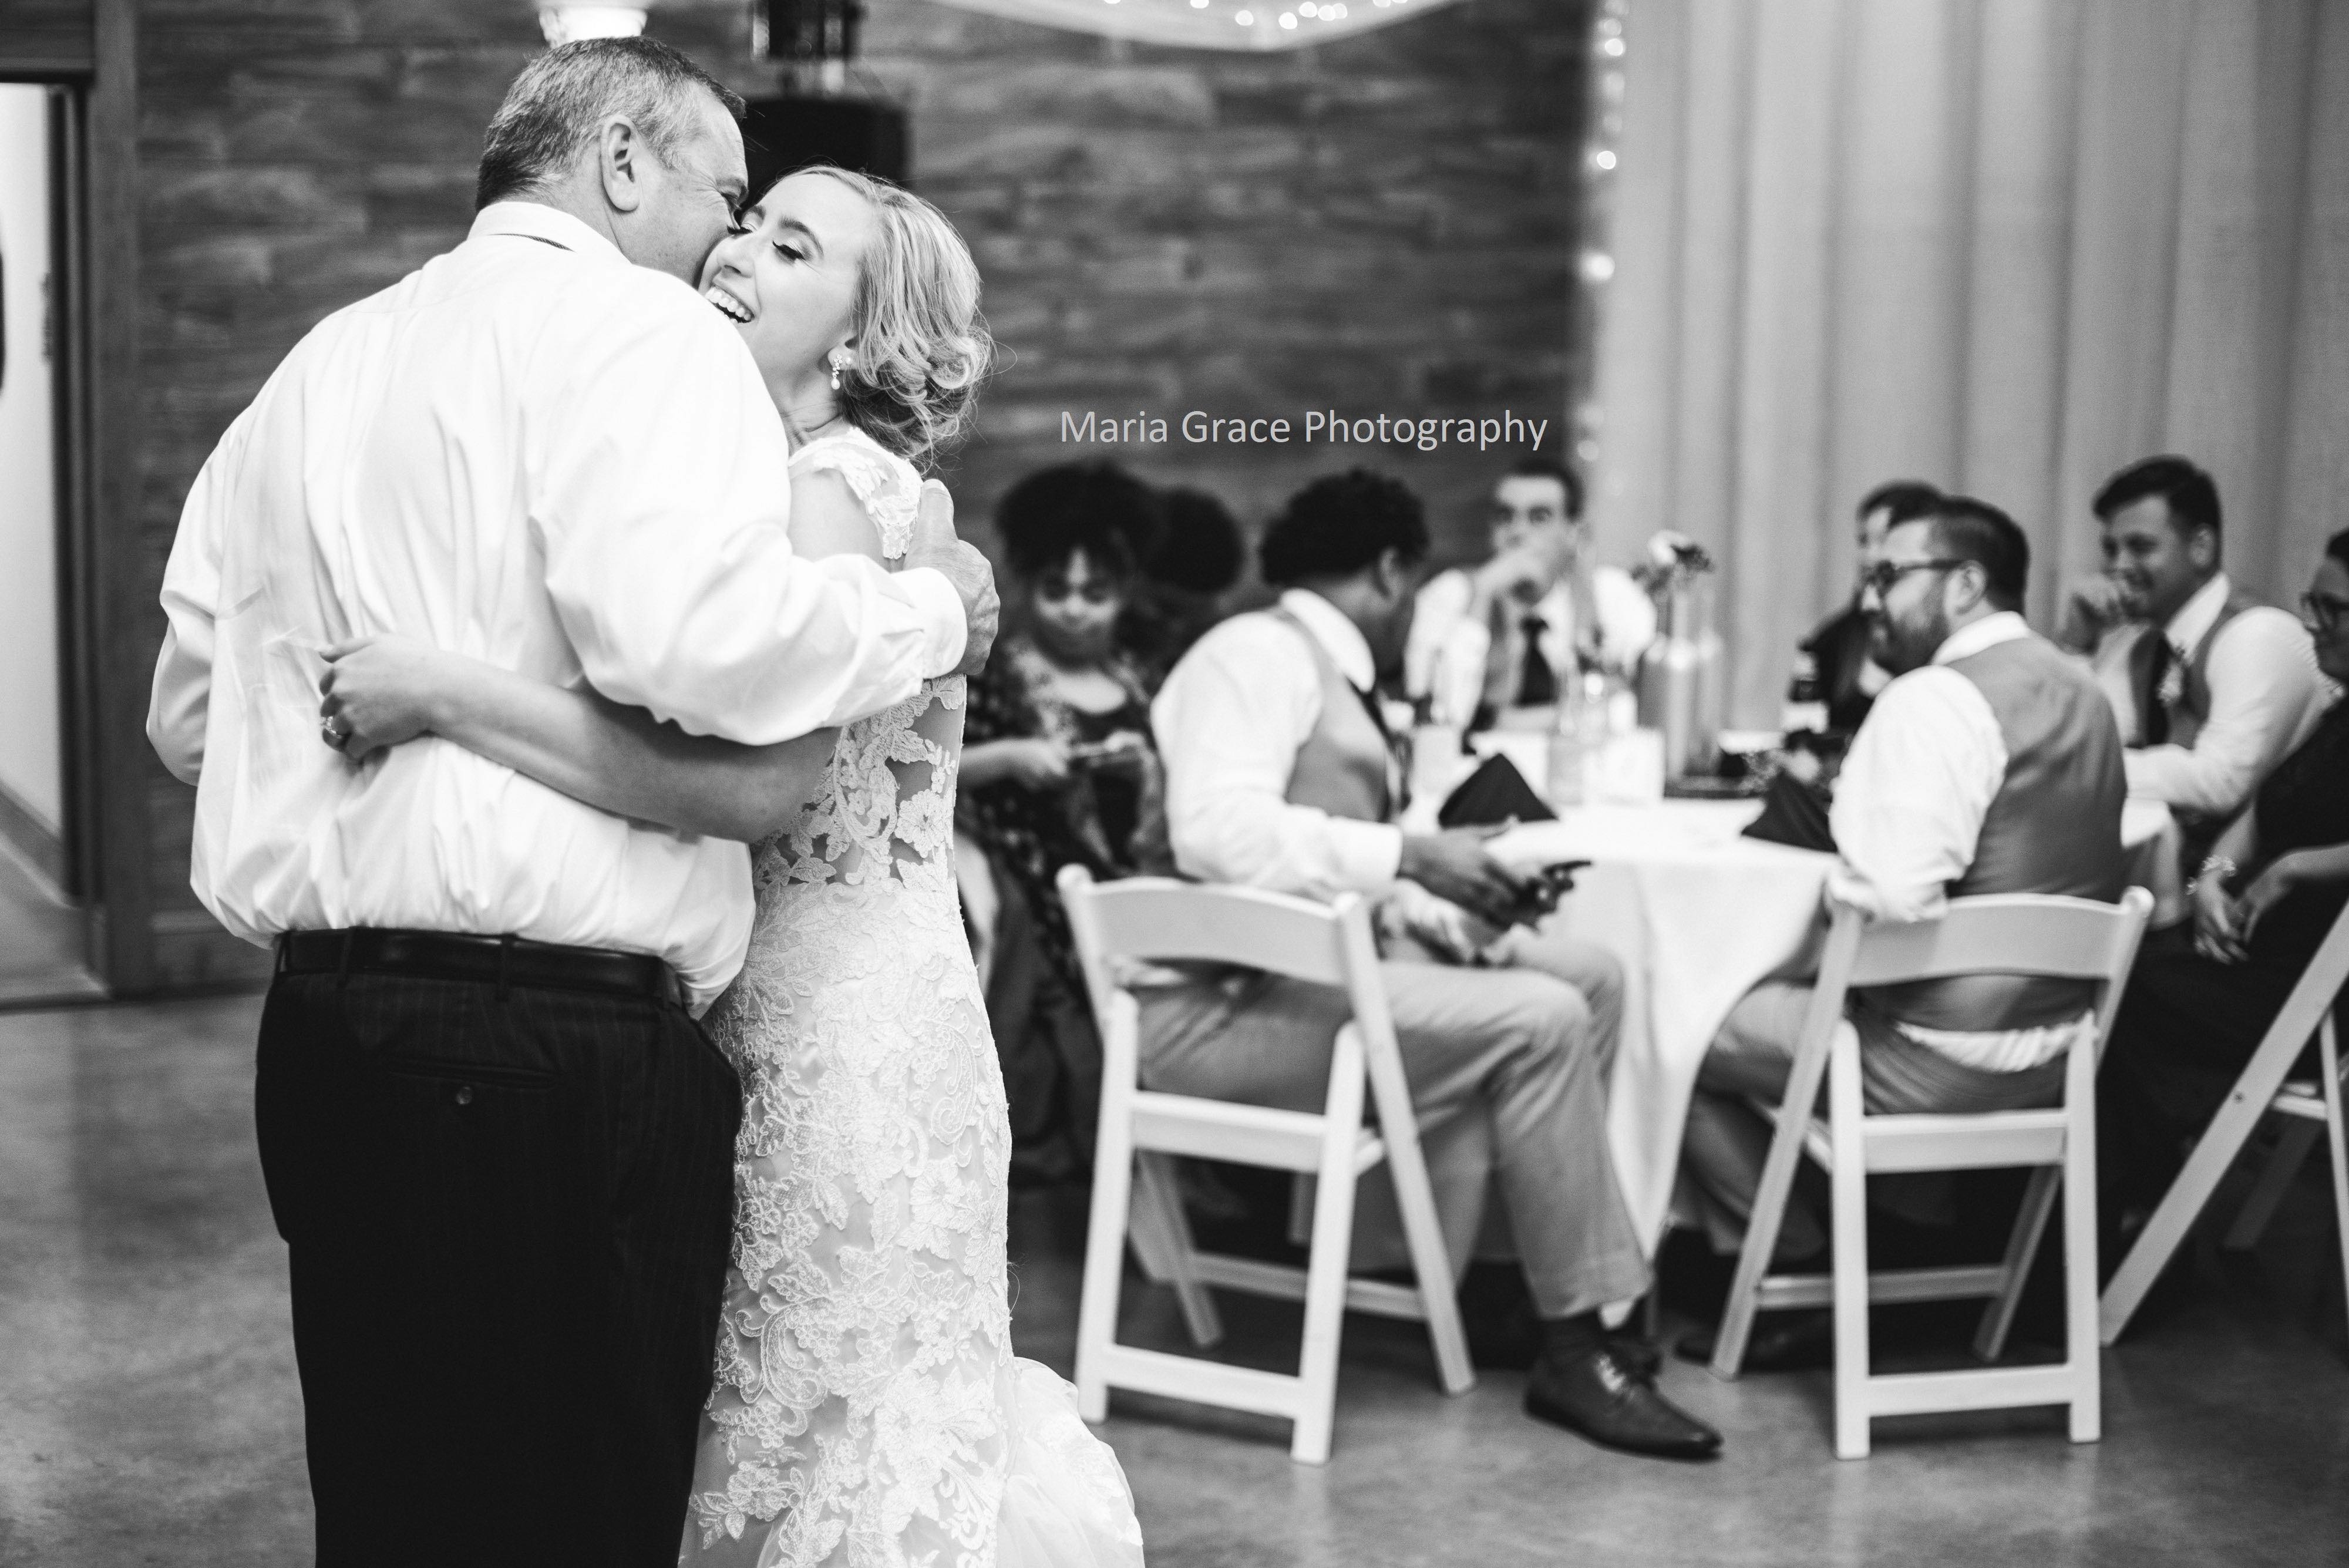 Kaleigh and her father dancing on her wedding day.